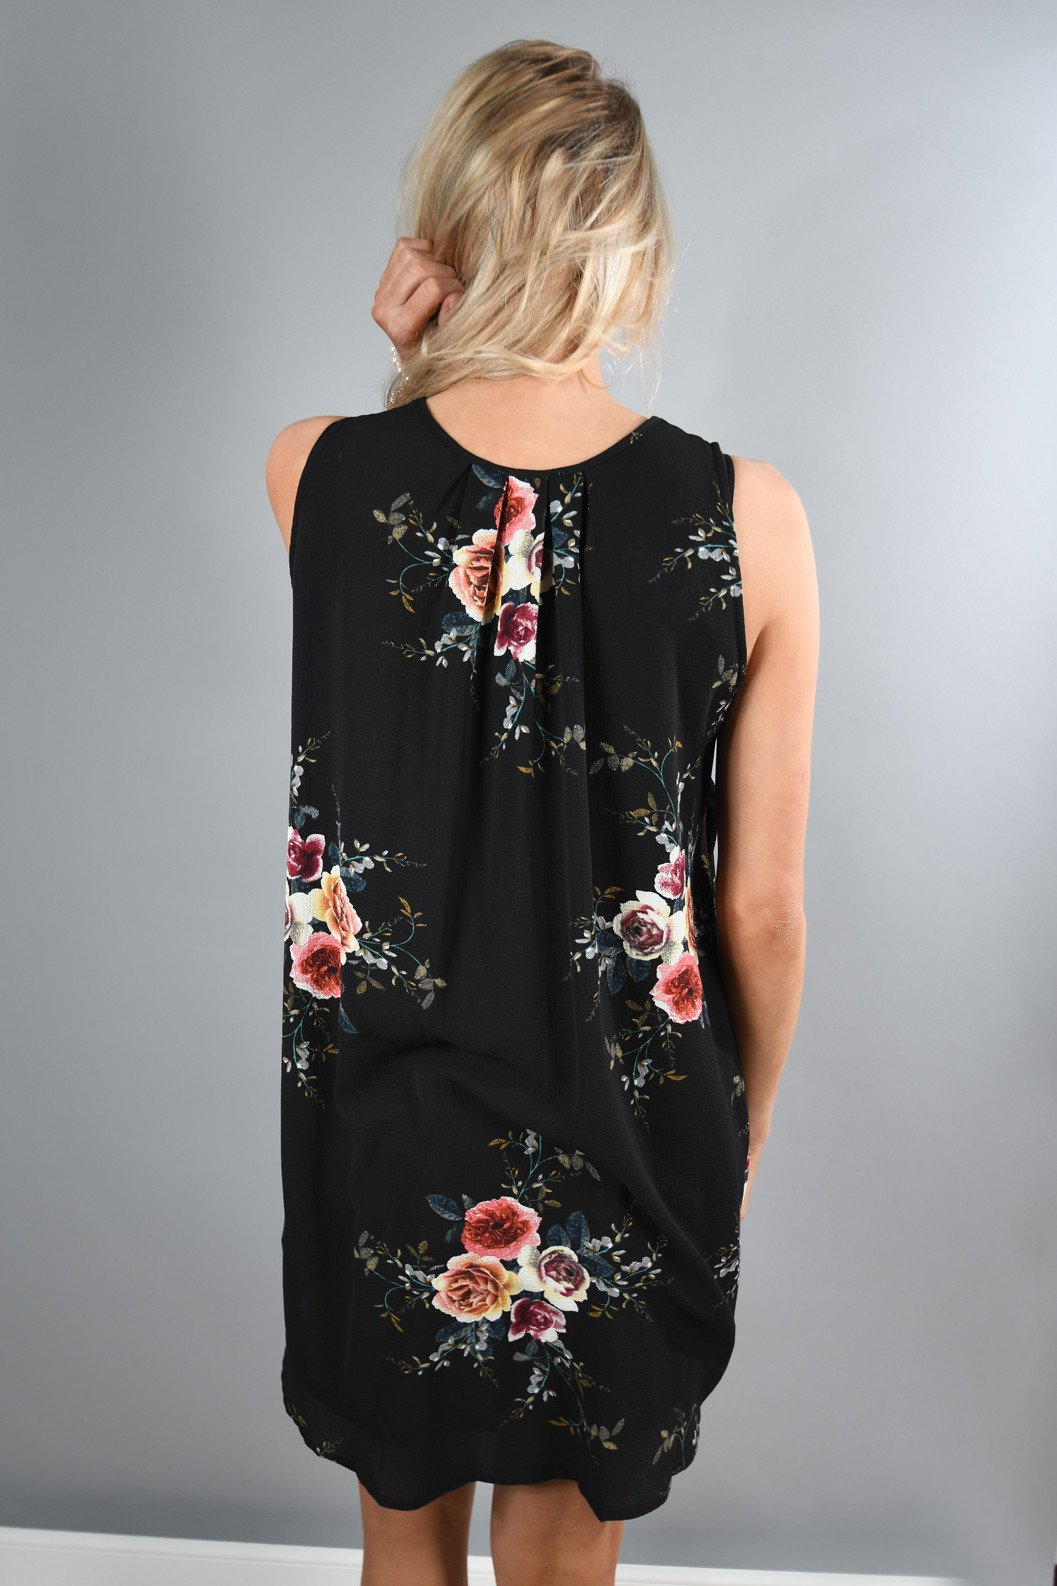 Find a Reason Floral Sleeveless Dress